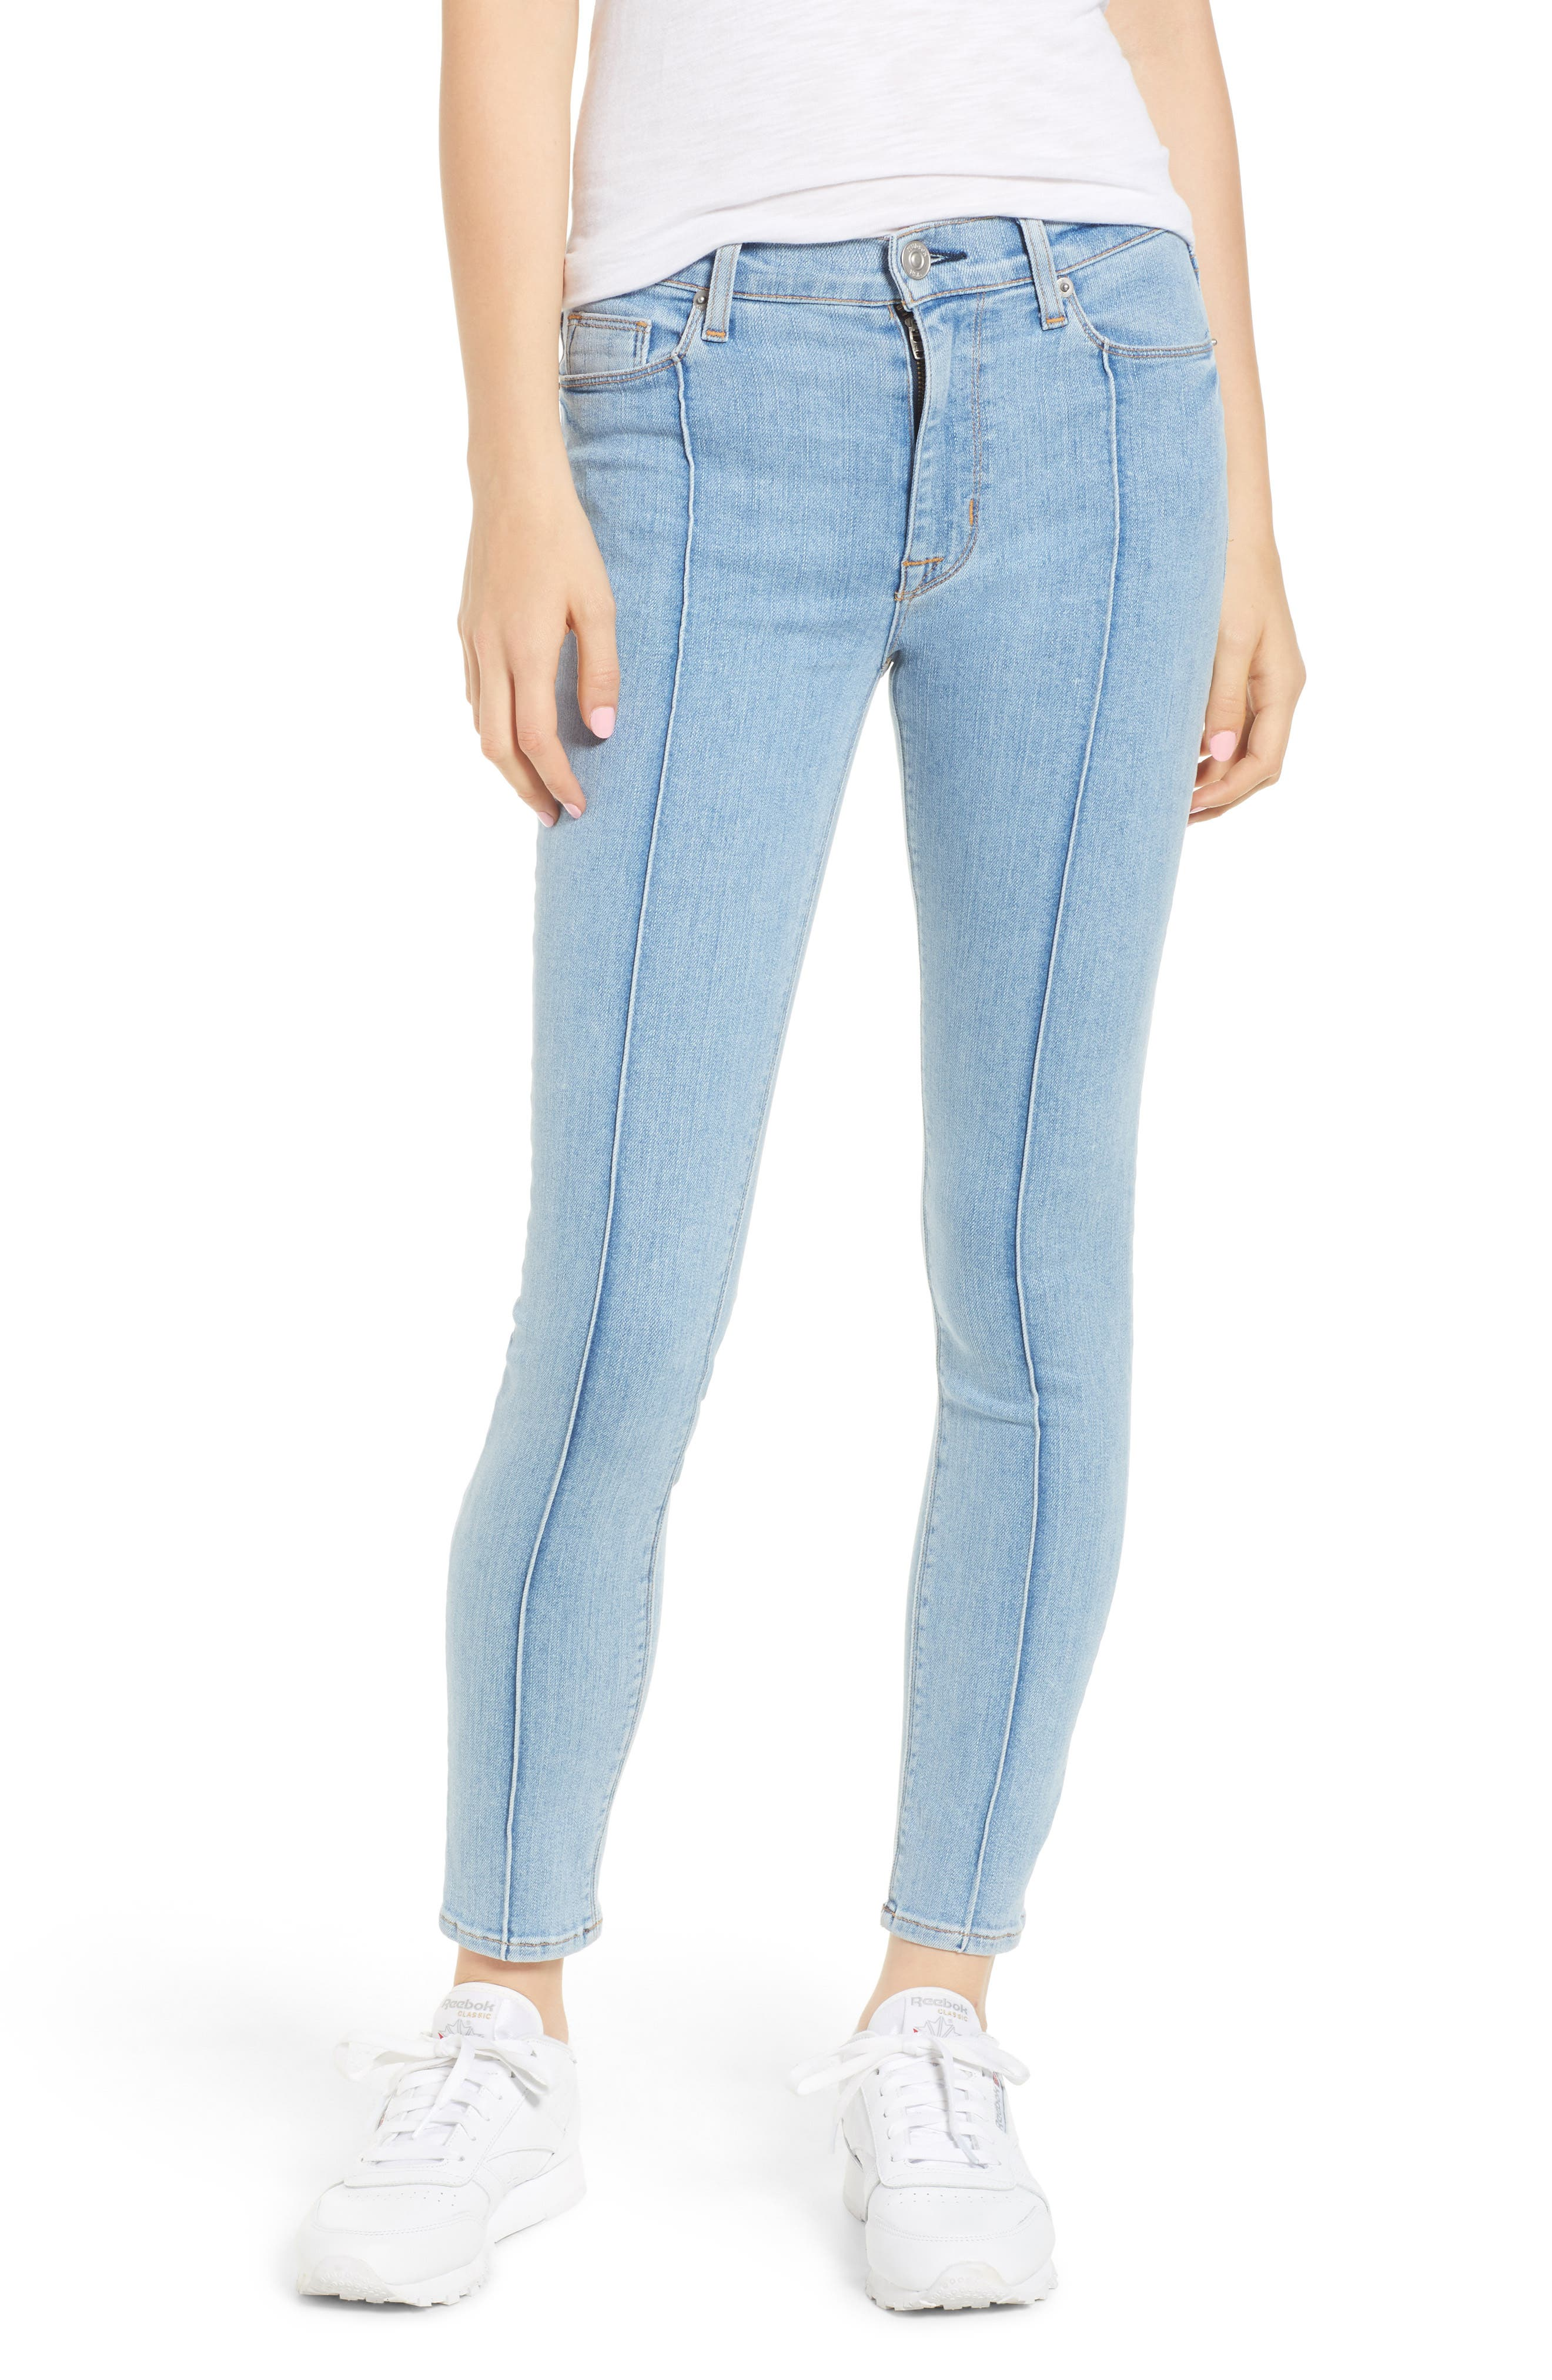 Barbara High Waist Super Skinny Jeans,                         Main,                         color, Nymph